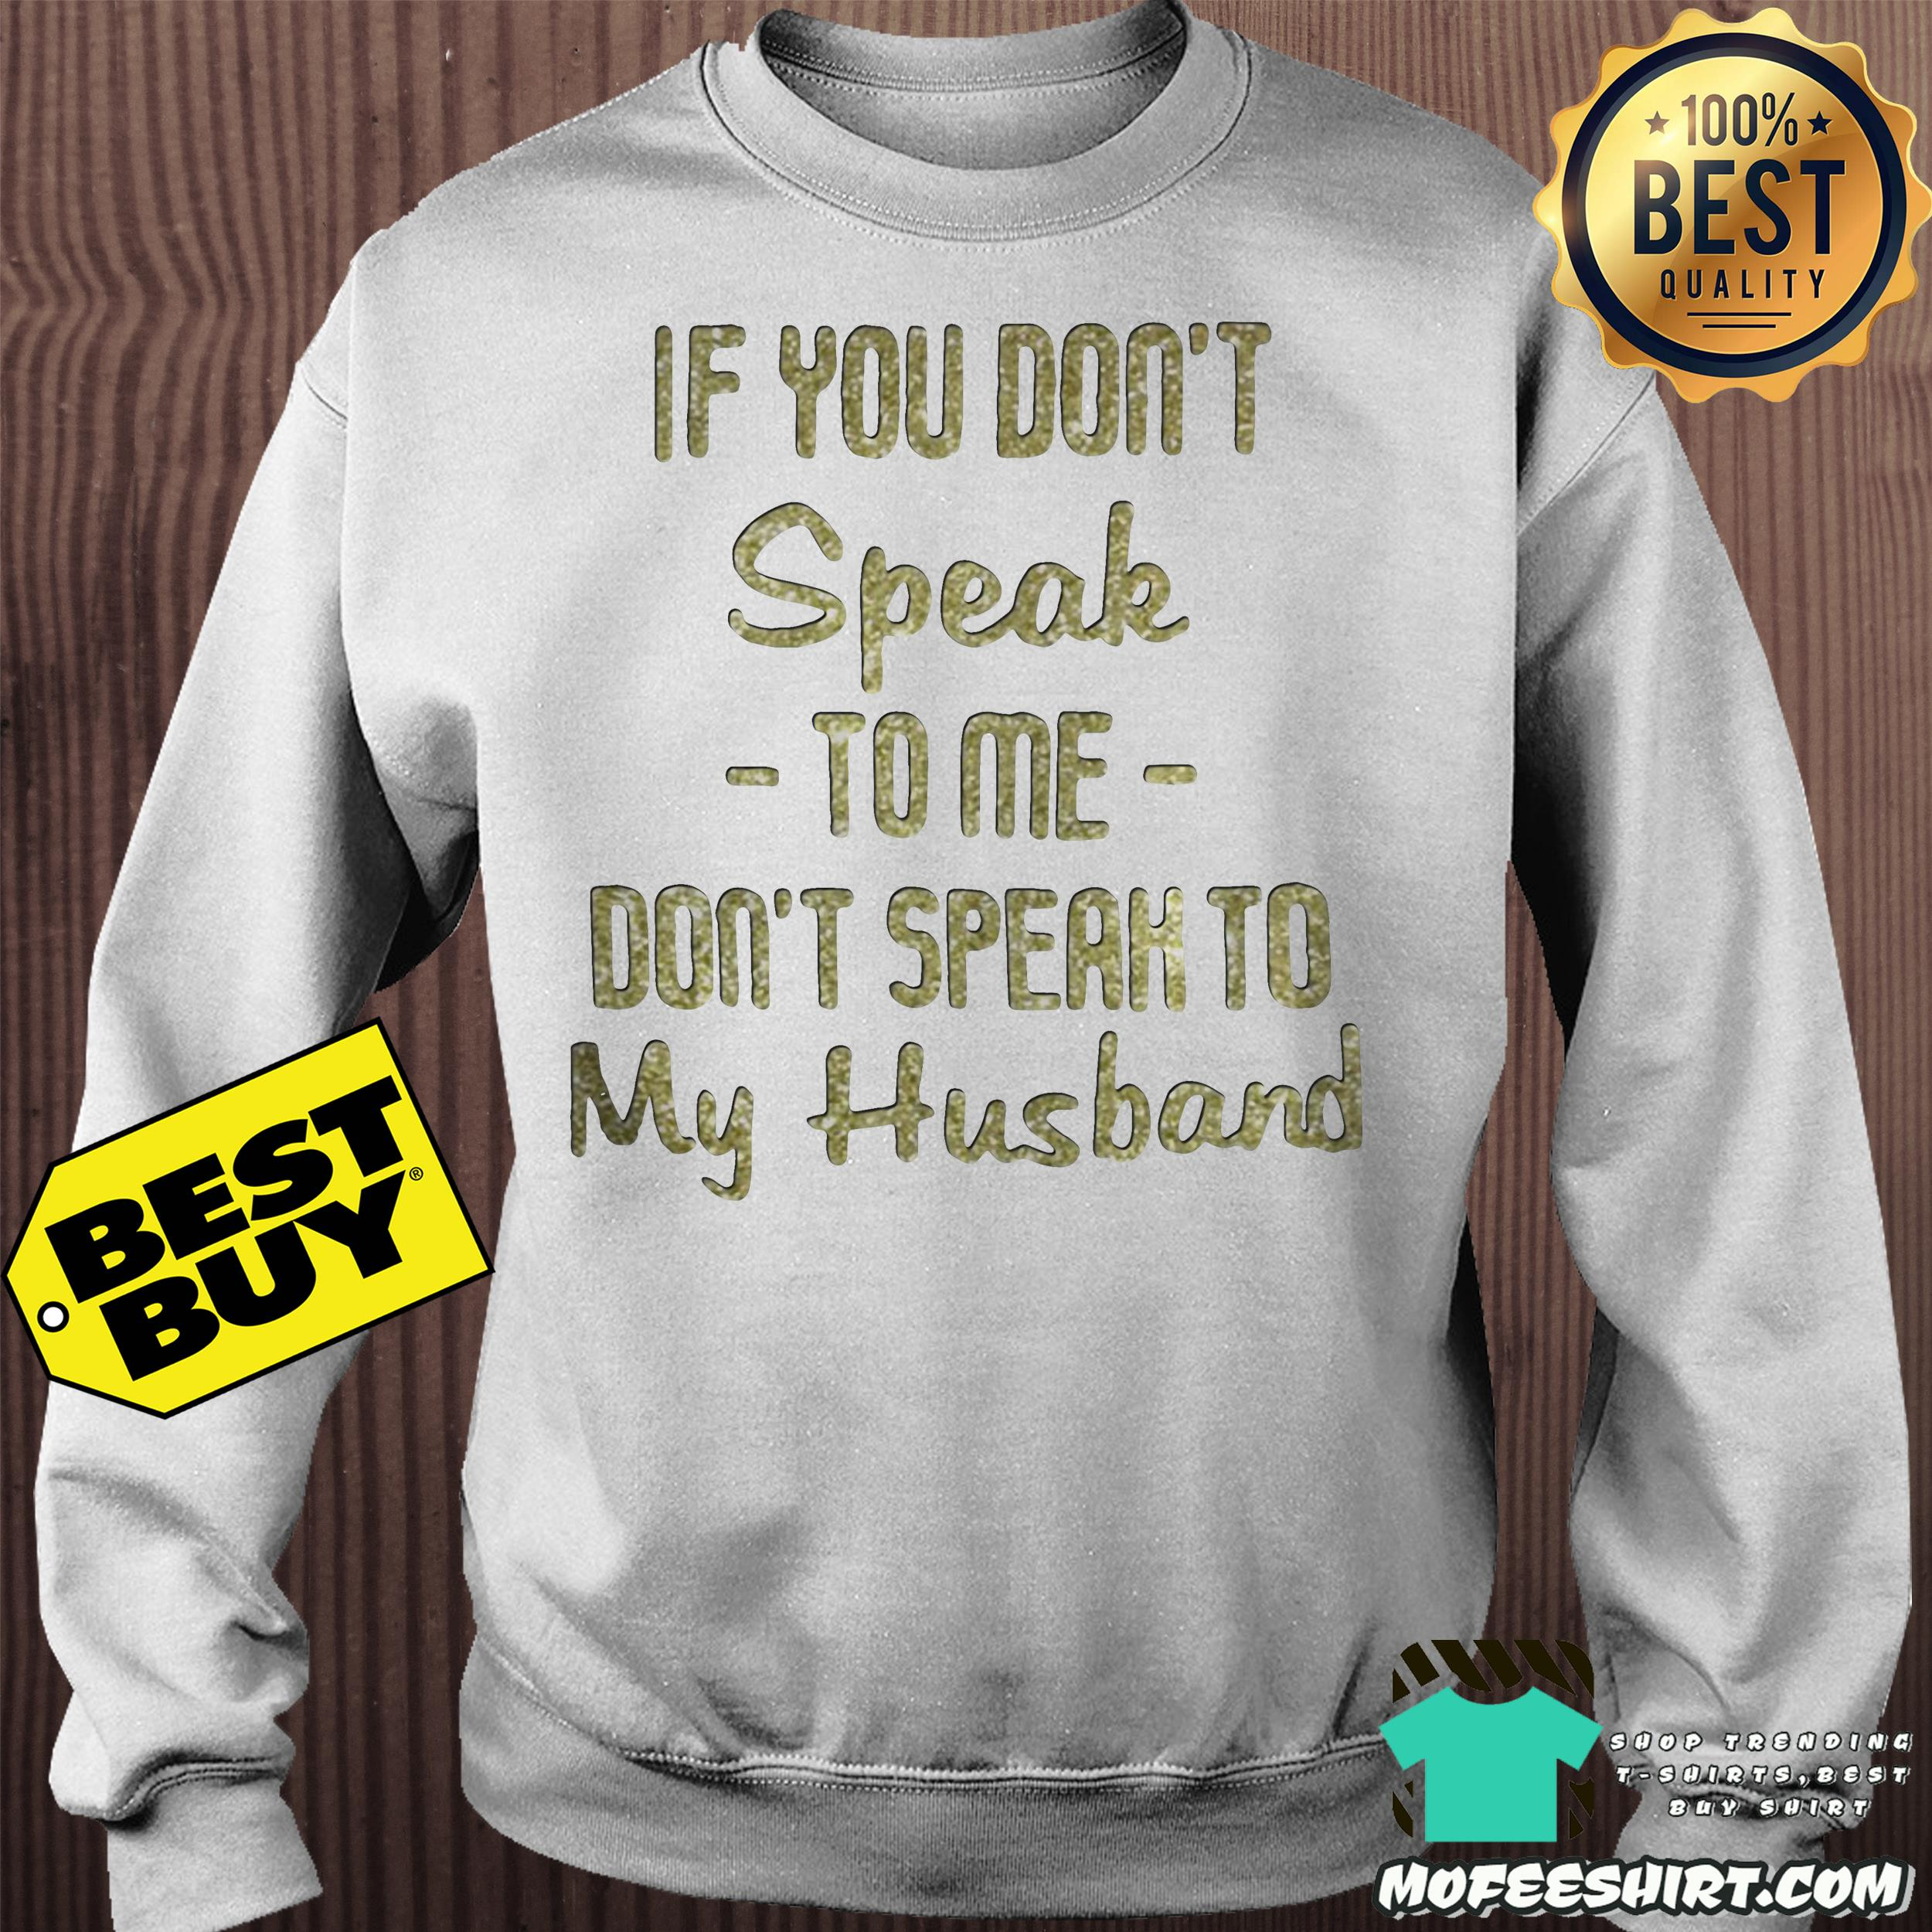 if you dont speak to me dont speak to my husband sweatshirt - If you don't speak to me don't speak to my husband shirt